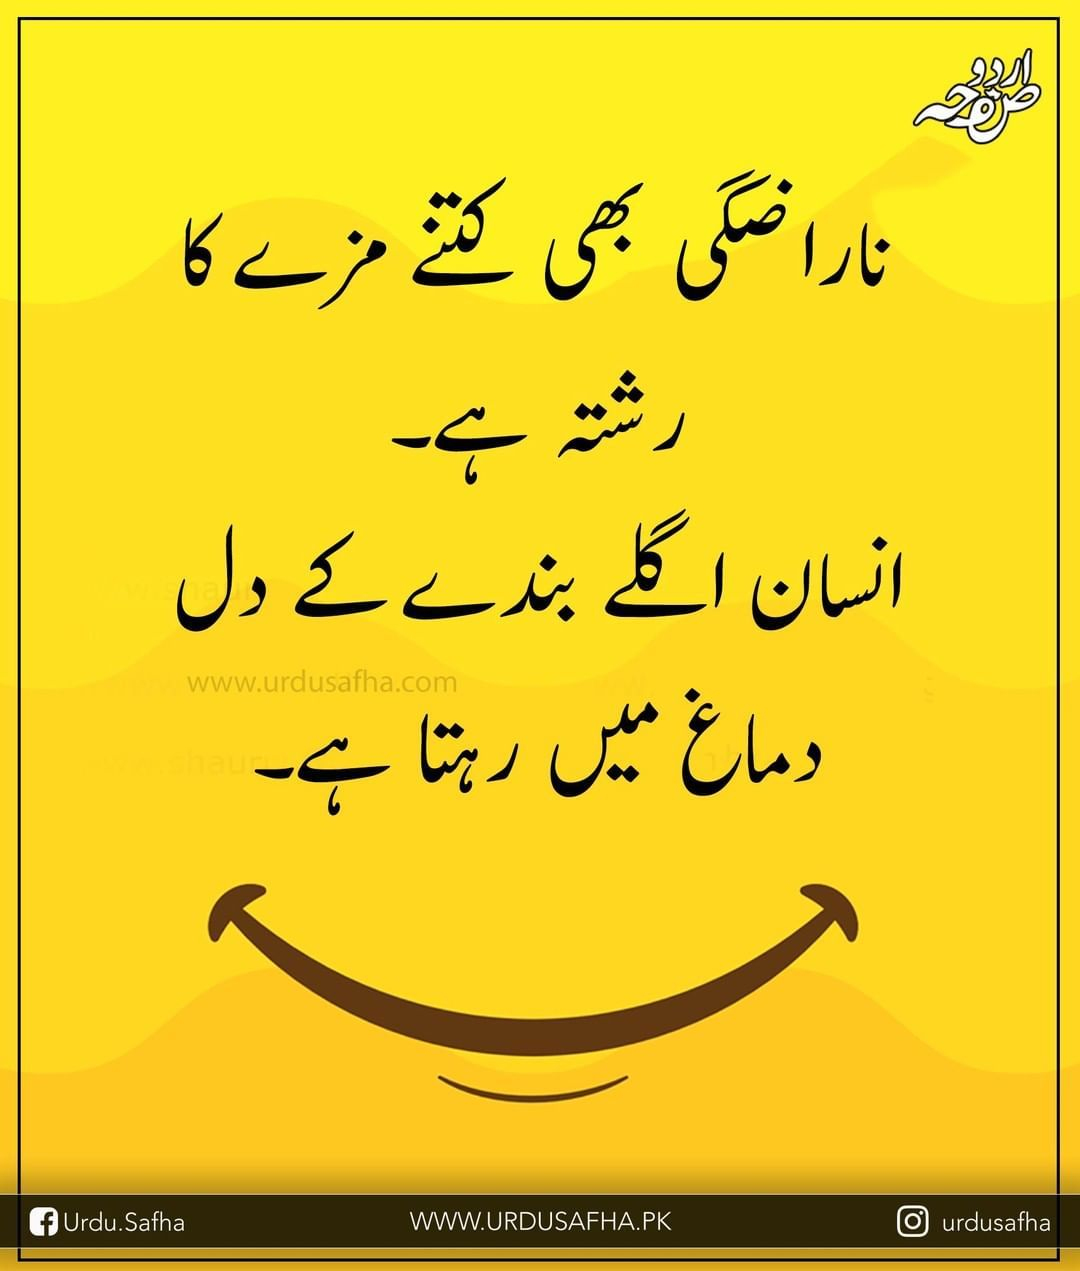 Pin By Anayakhan On ƒǘn Jokes Quotes Love Husband Quotes Funny Quotes